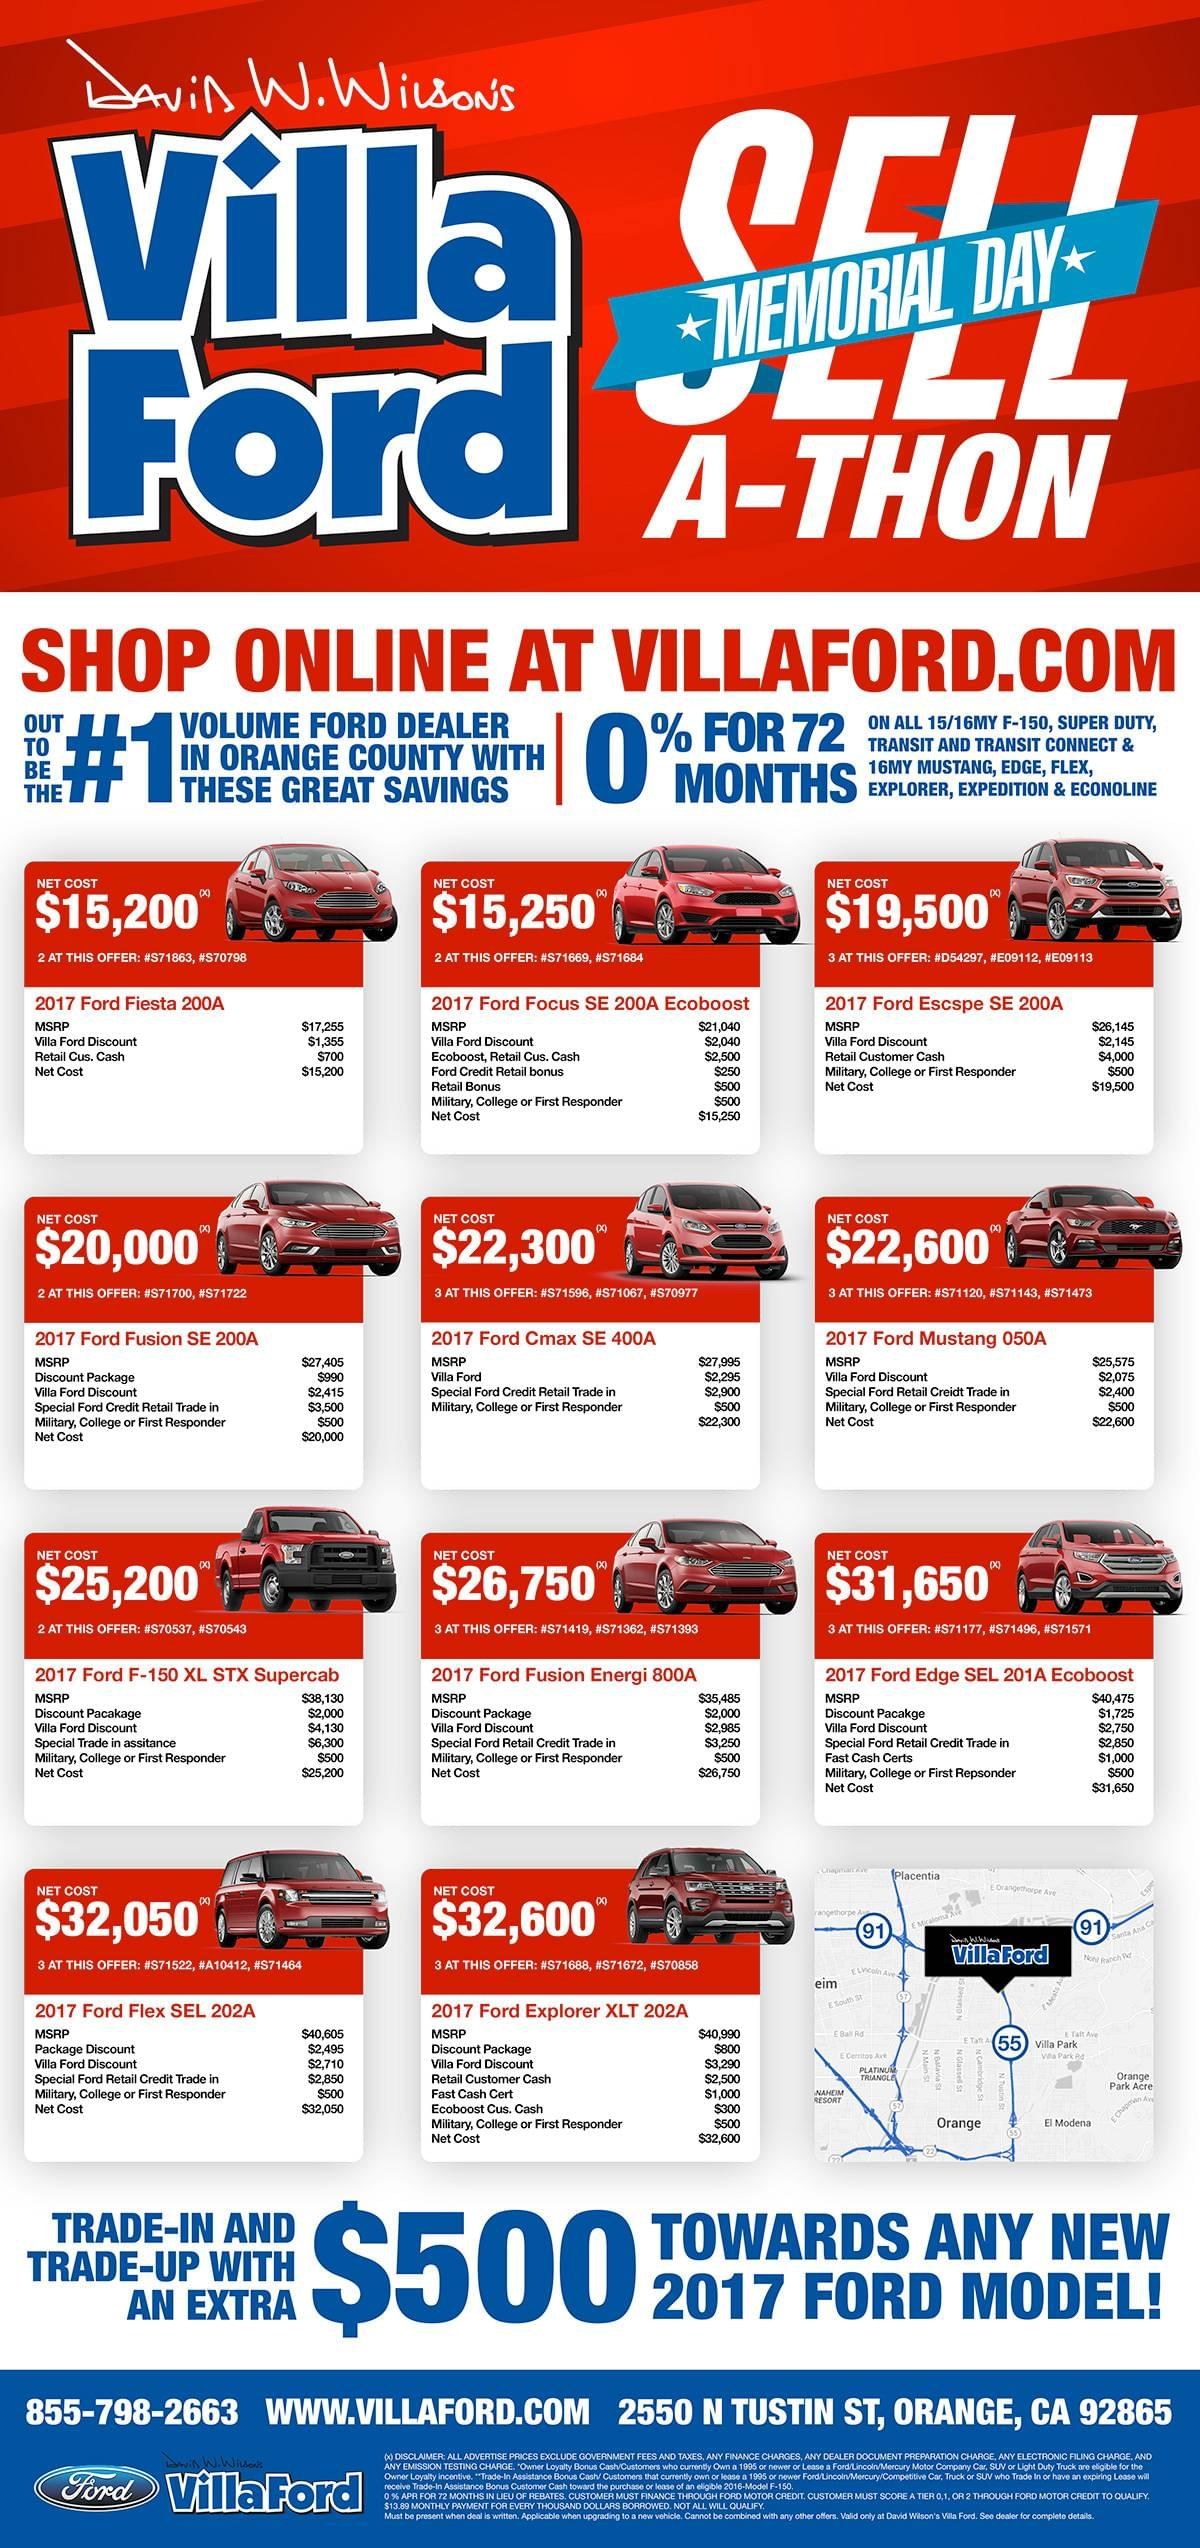 Villa Ford Memorial Day Sell-A-Thon